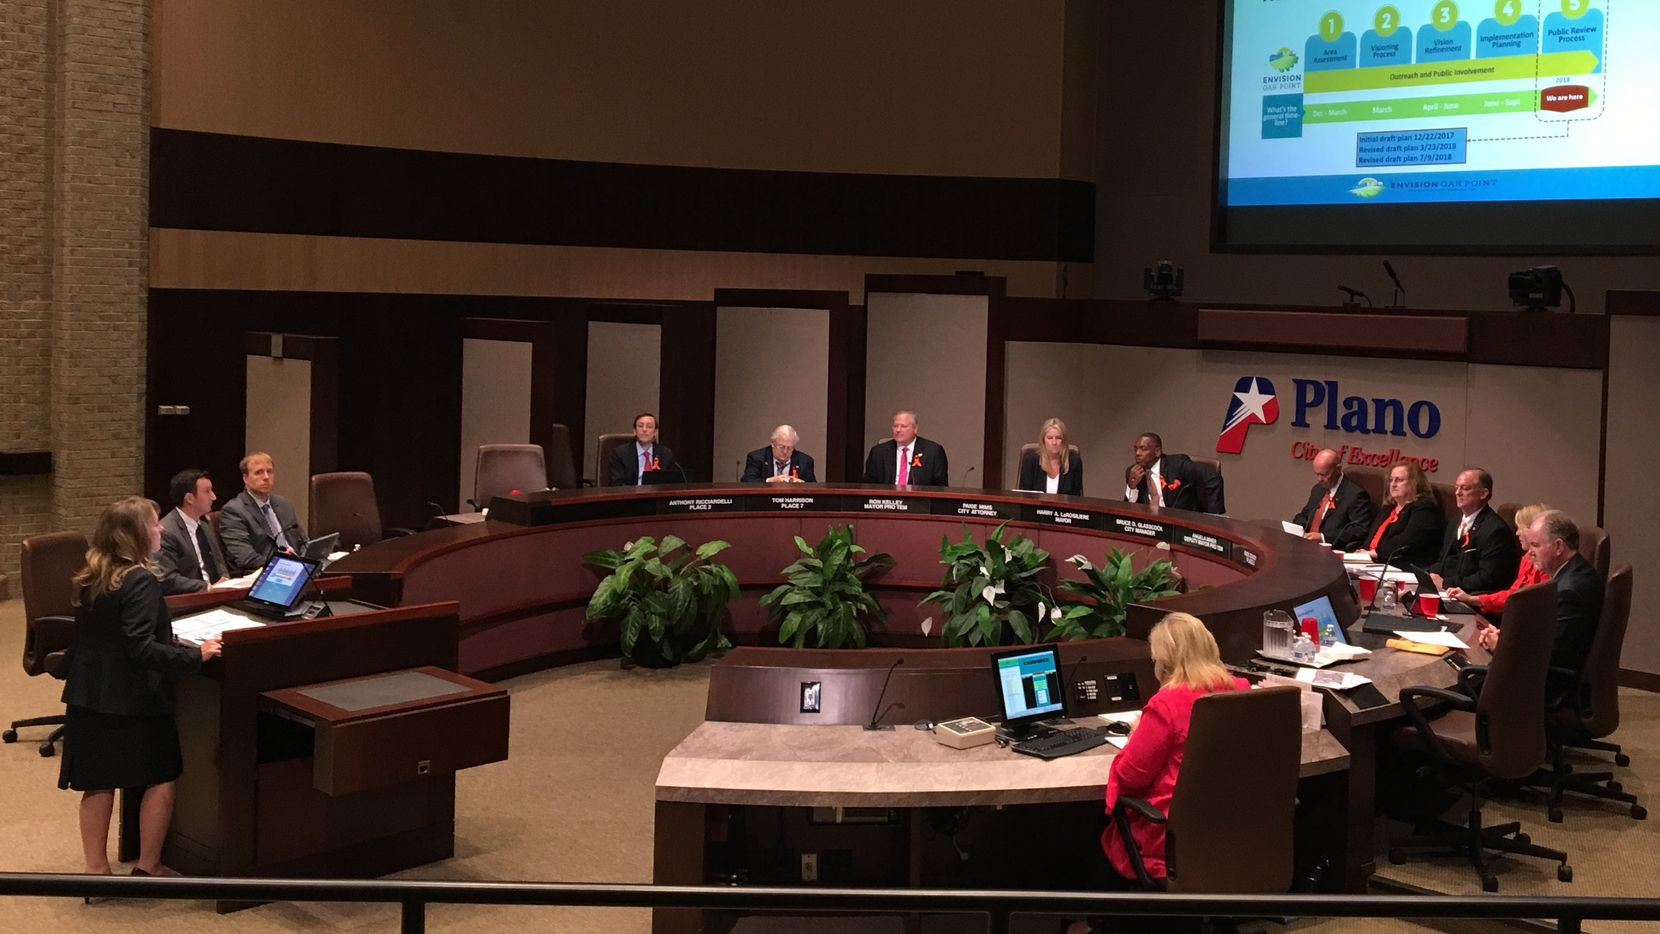 Plano planning director Christina Day, far left, talks to the Plano City Council about the Envision Oak Point plan on Monday, July 23, 2018.